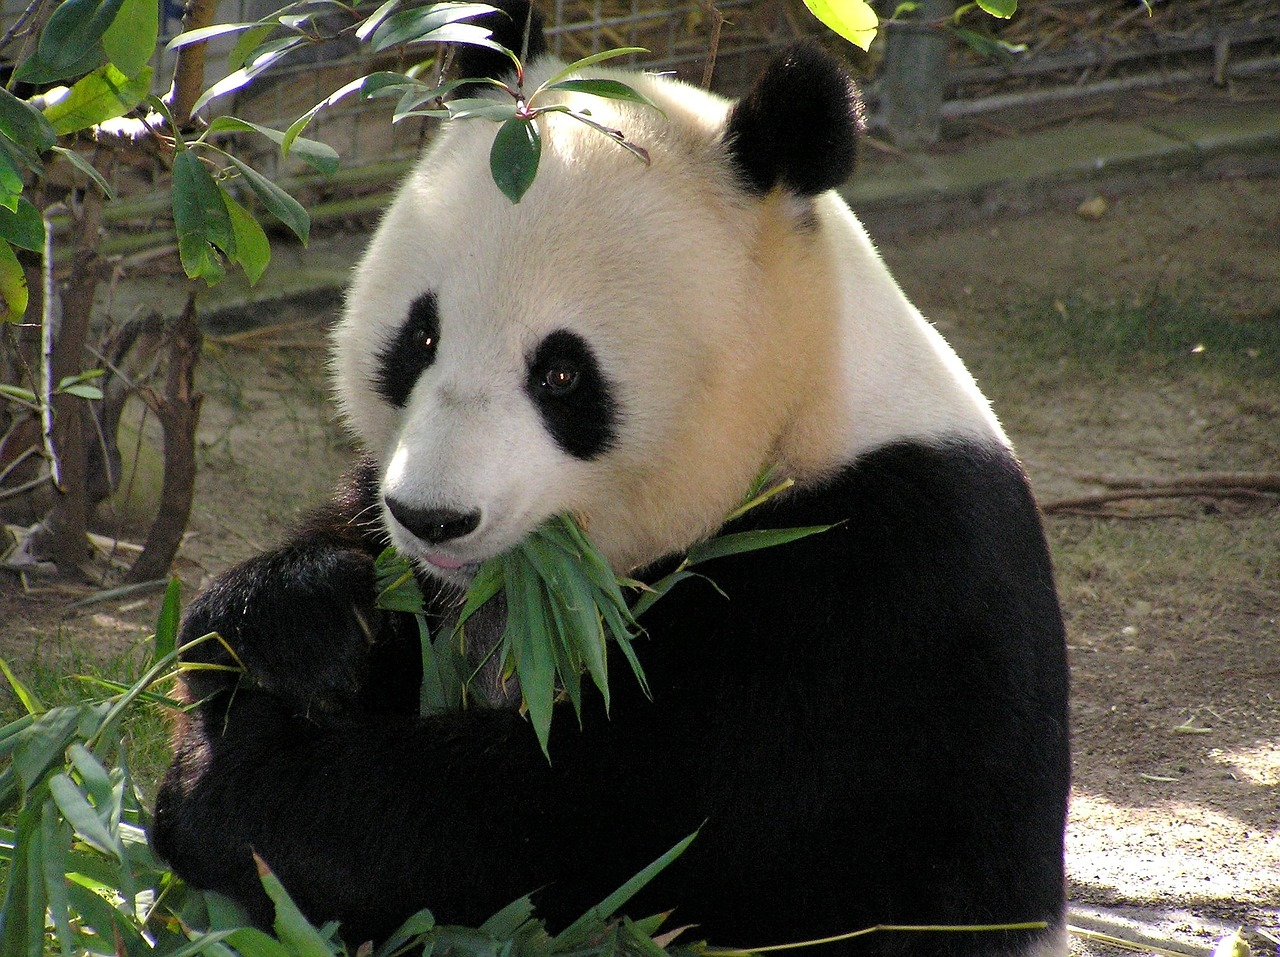 Giant Pandas, why are giant pandas endangered bear family